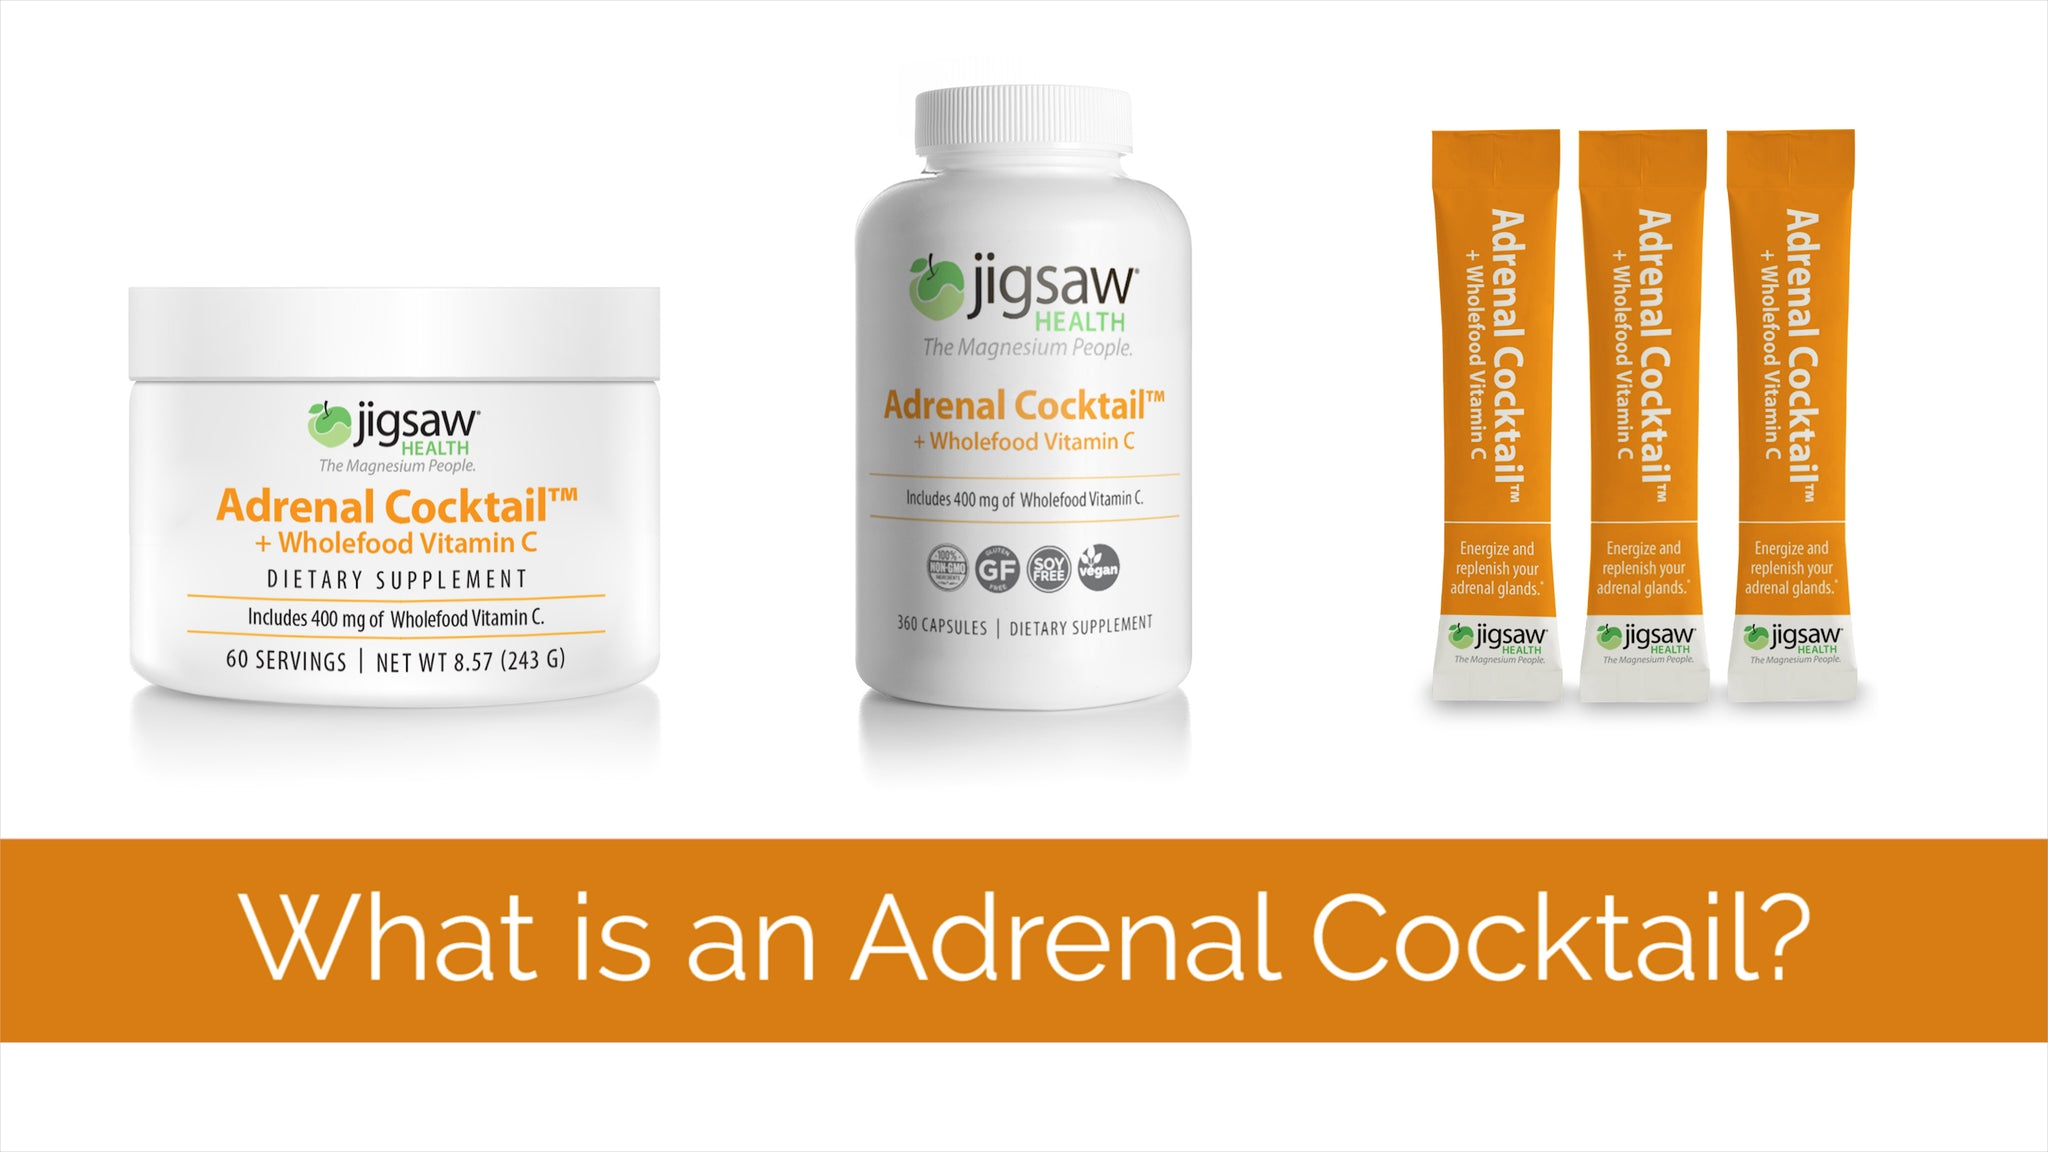 What is an Adrenal Cocktail?